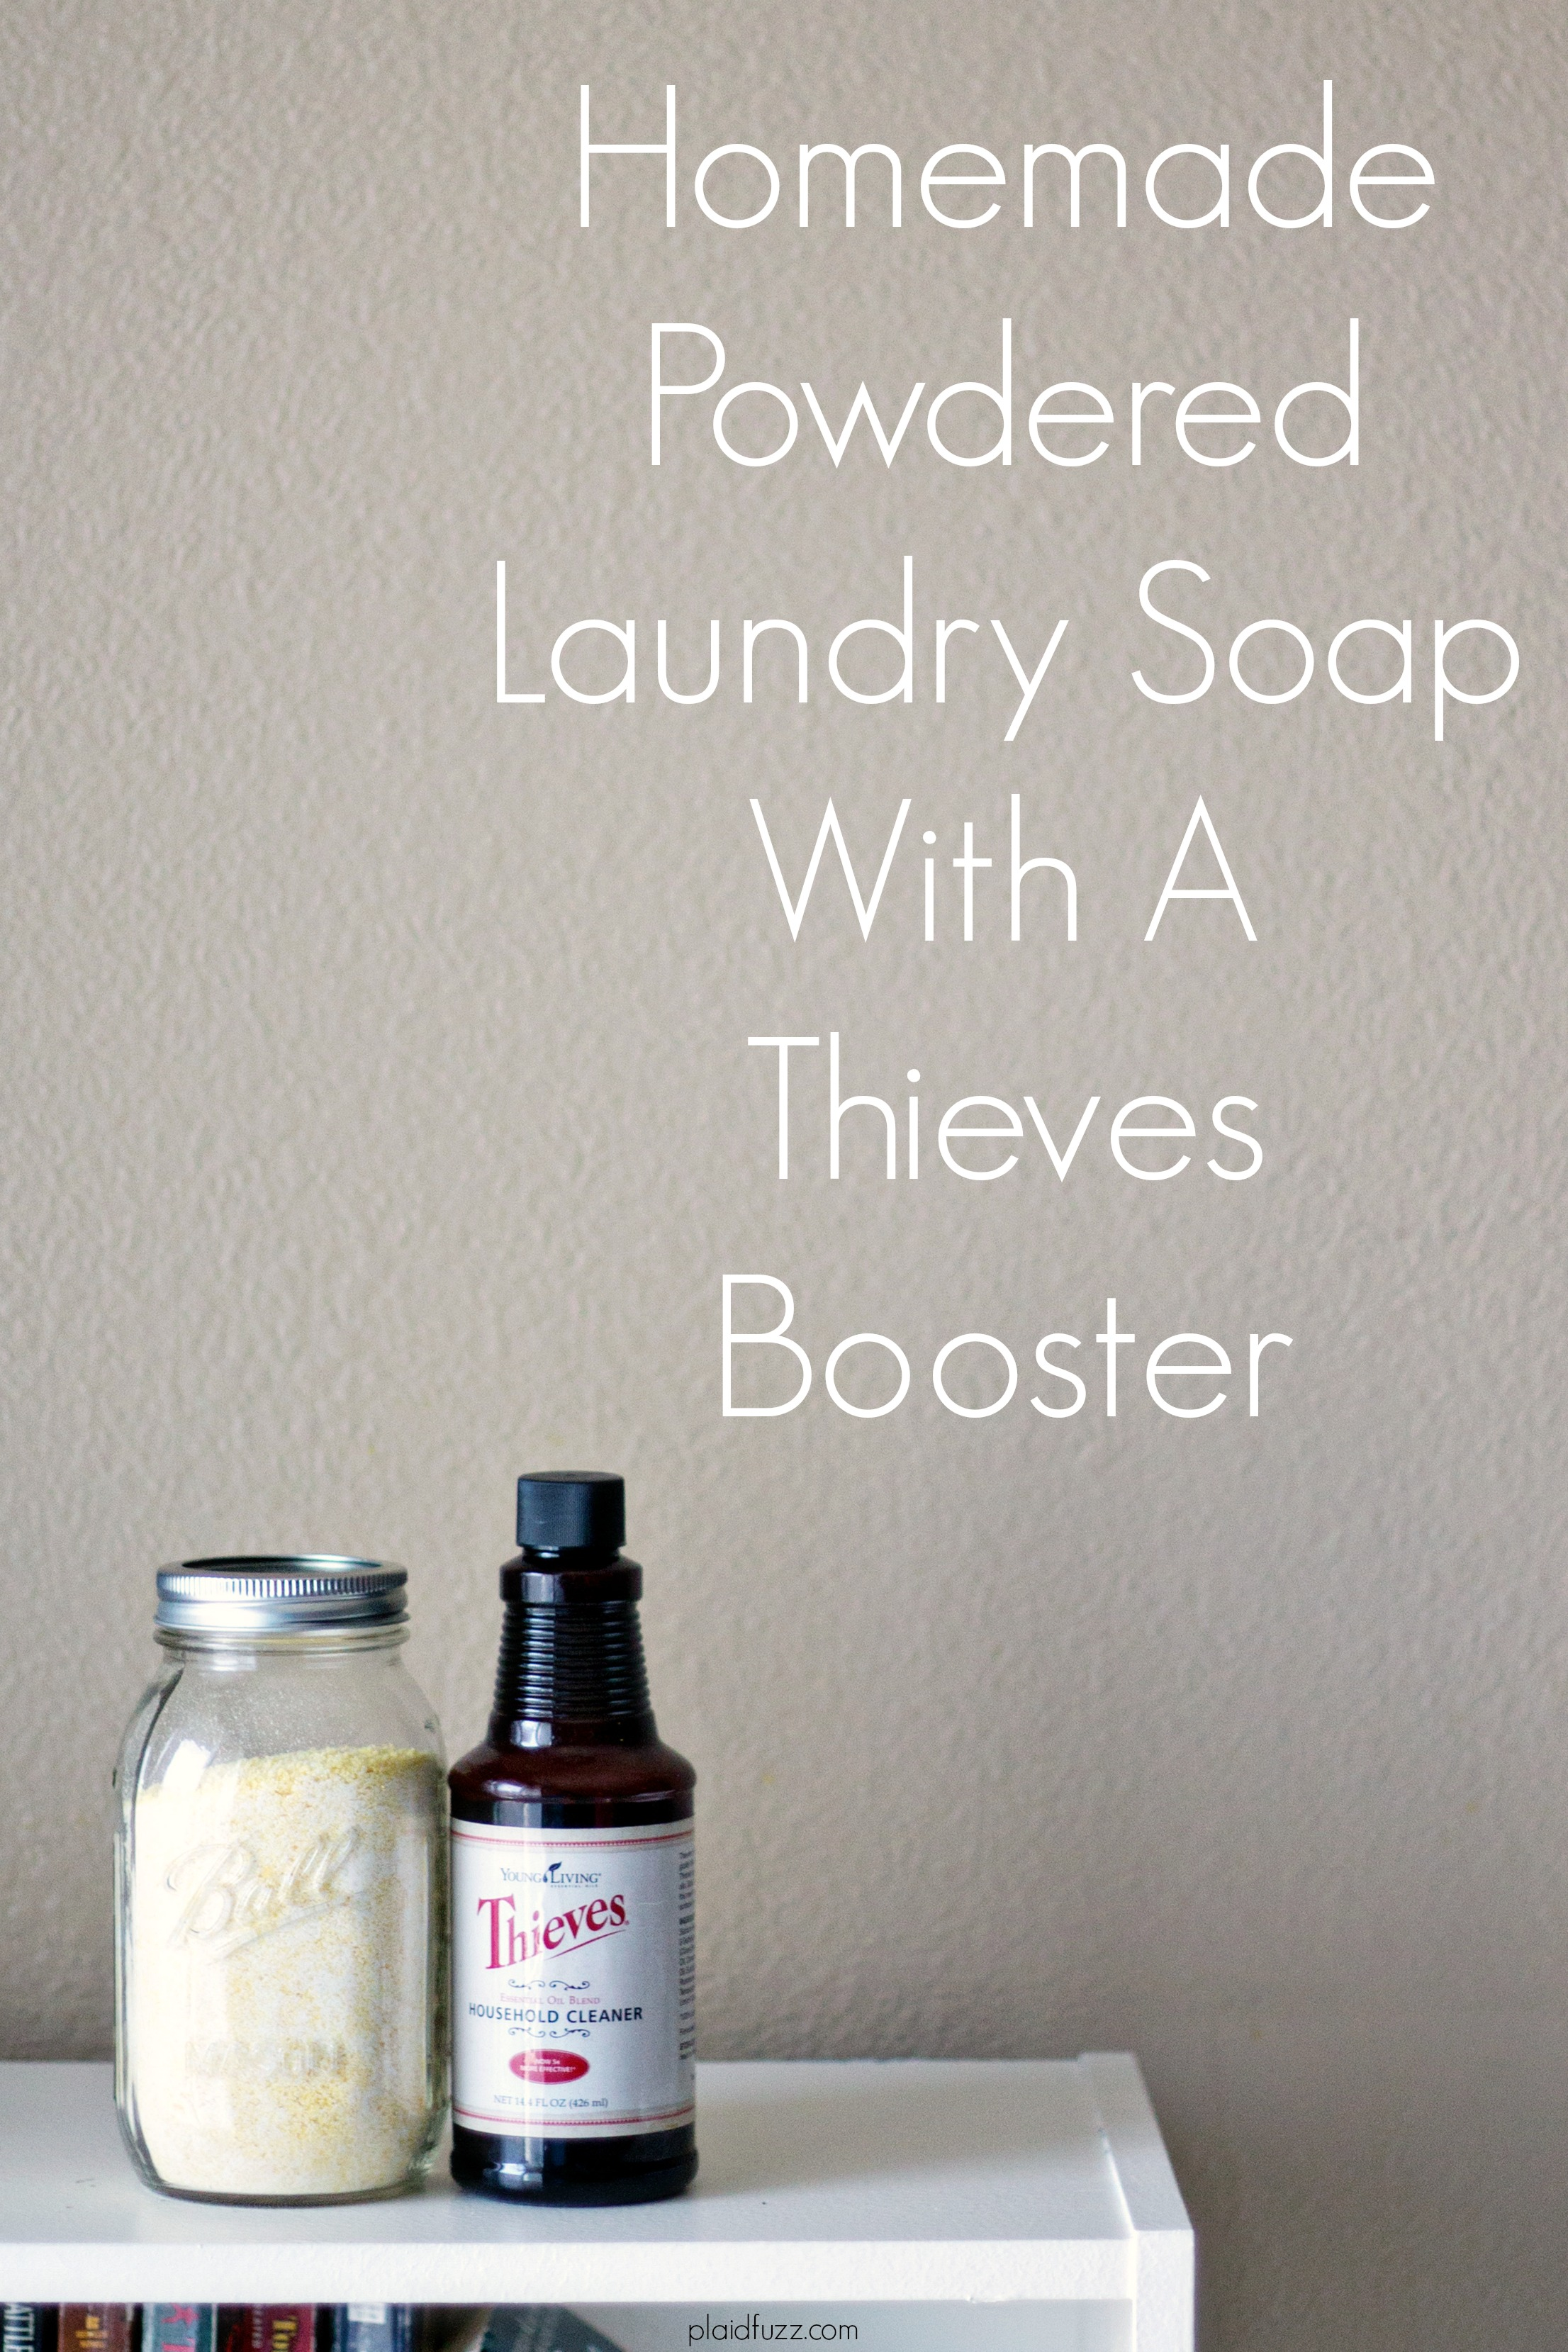 Homemade Powdered Laundry Soap With Thieves Booster